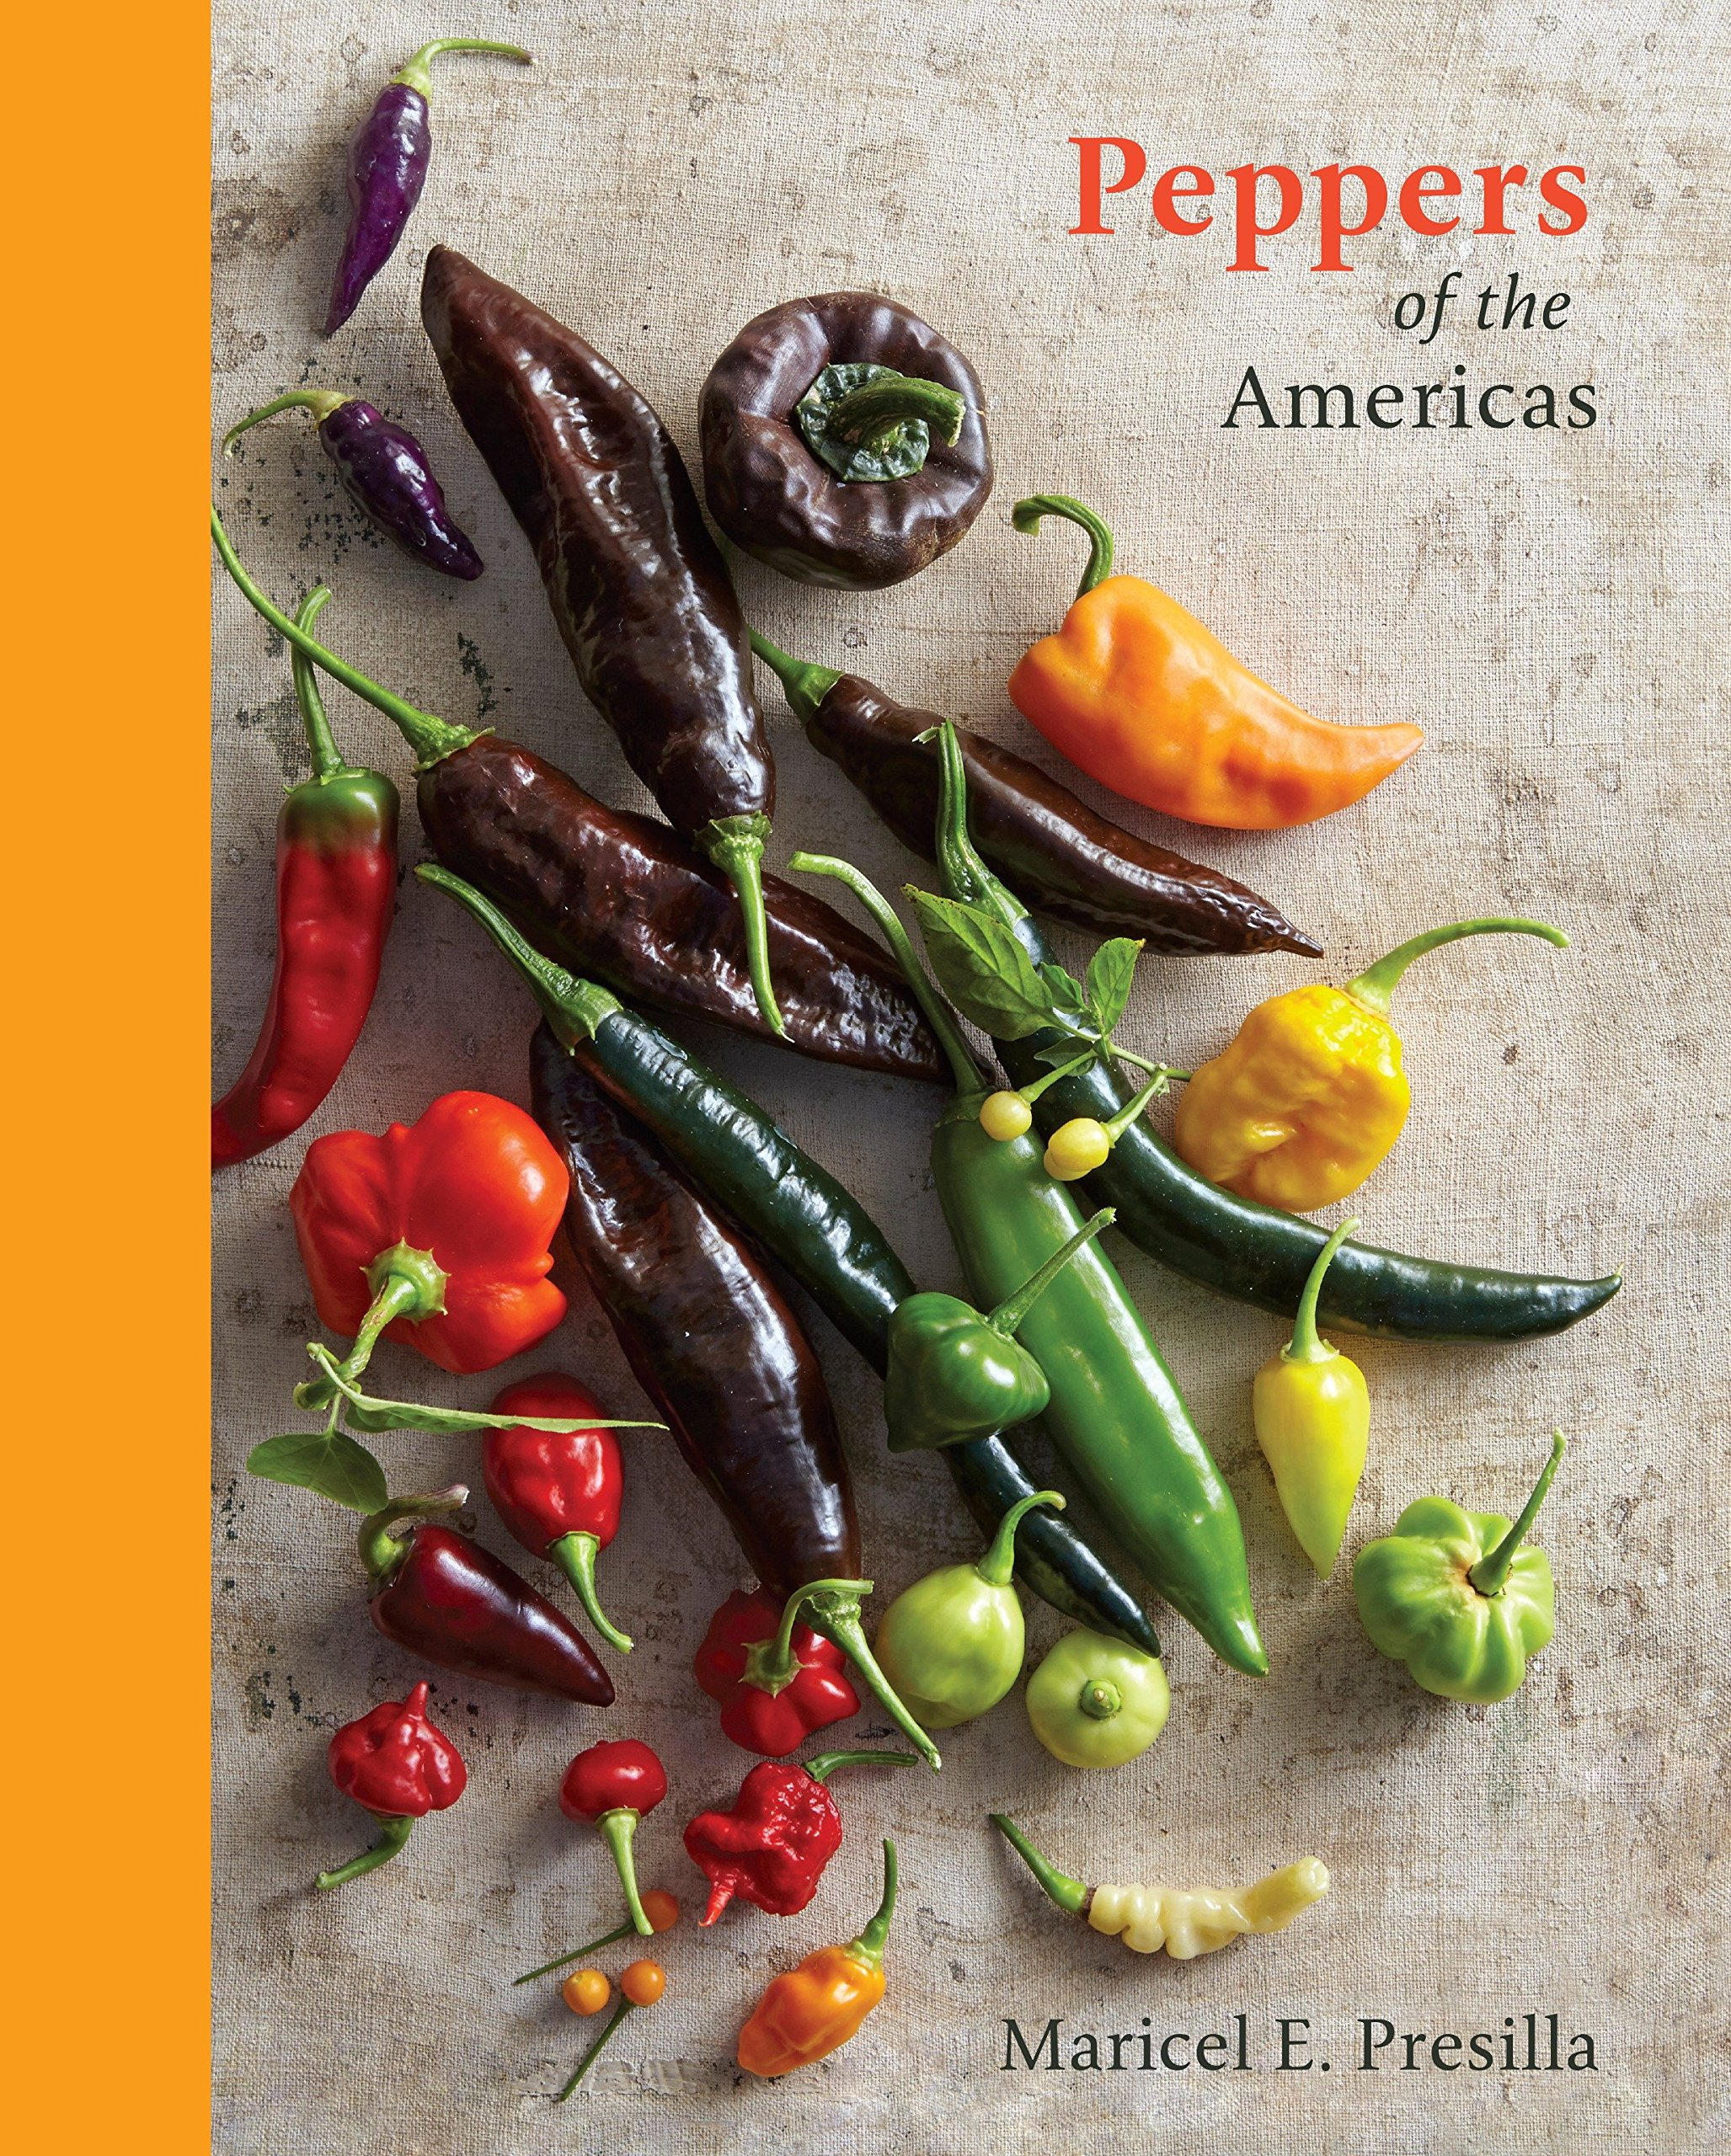 Peppers of the Americas: The Remarkable Capsicums That Forever Changed Flavor pdf